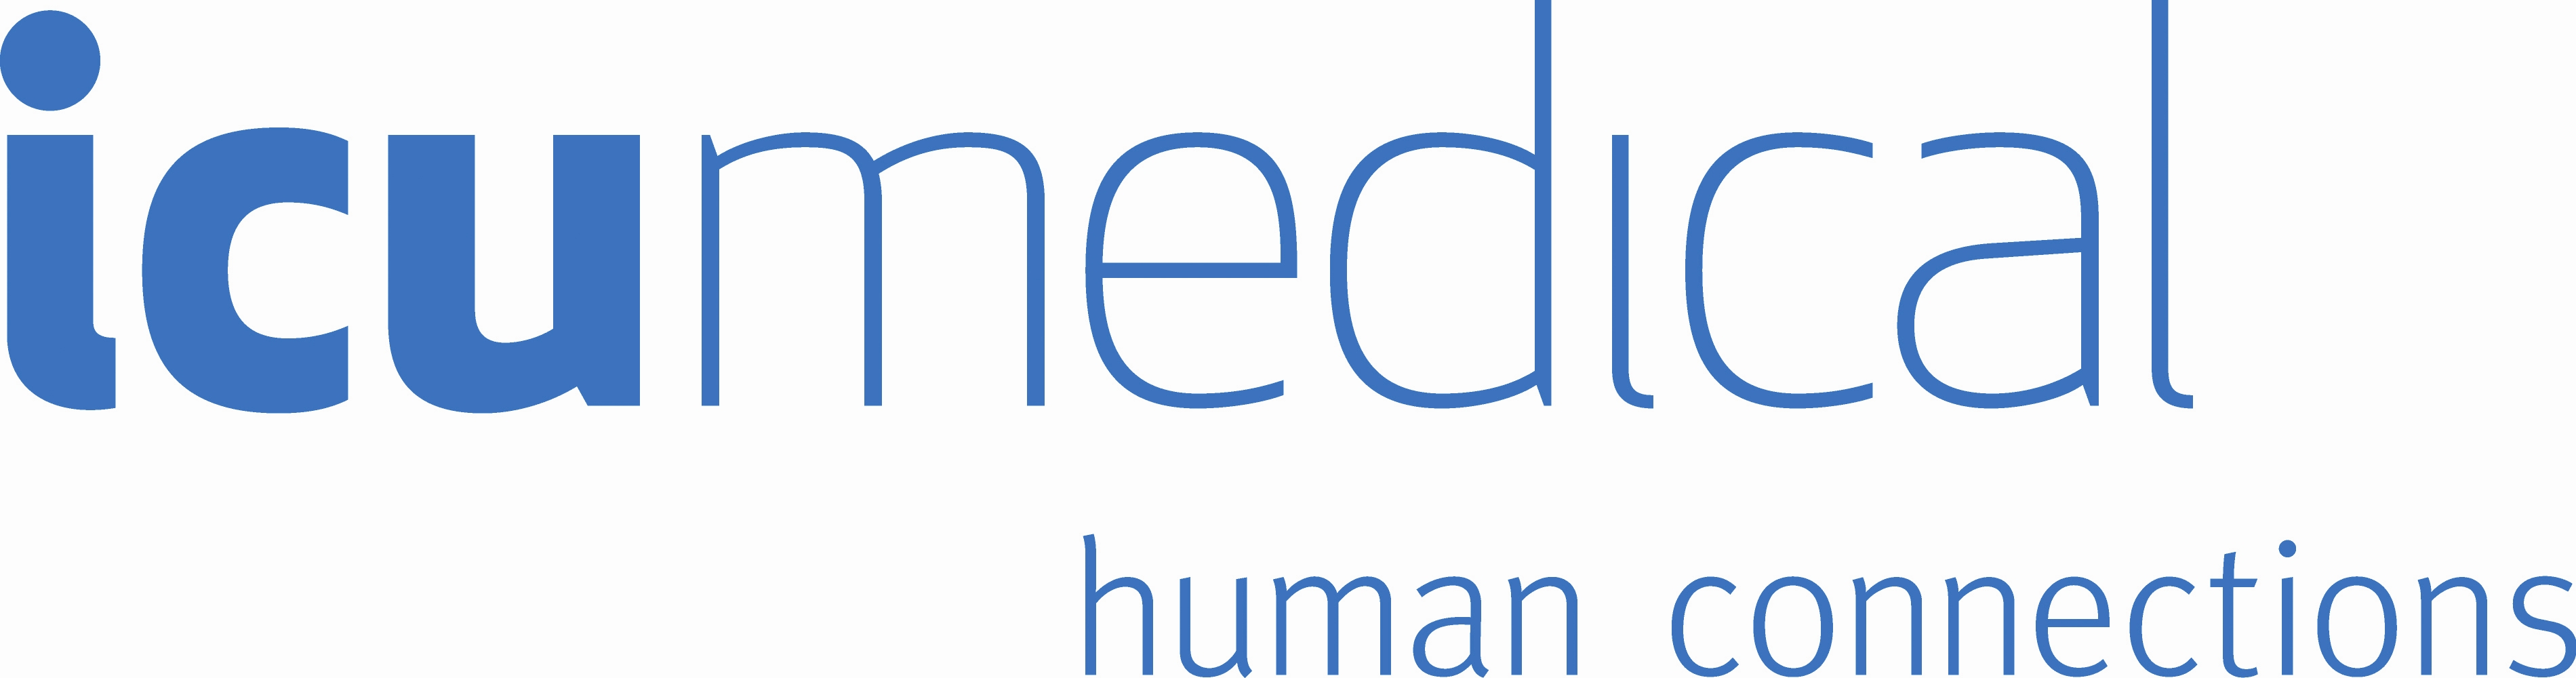 ICU MEDICAL LOGO HD